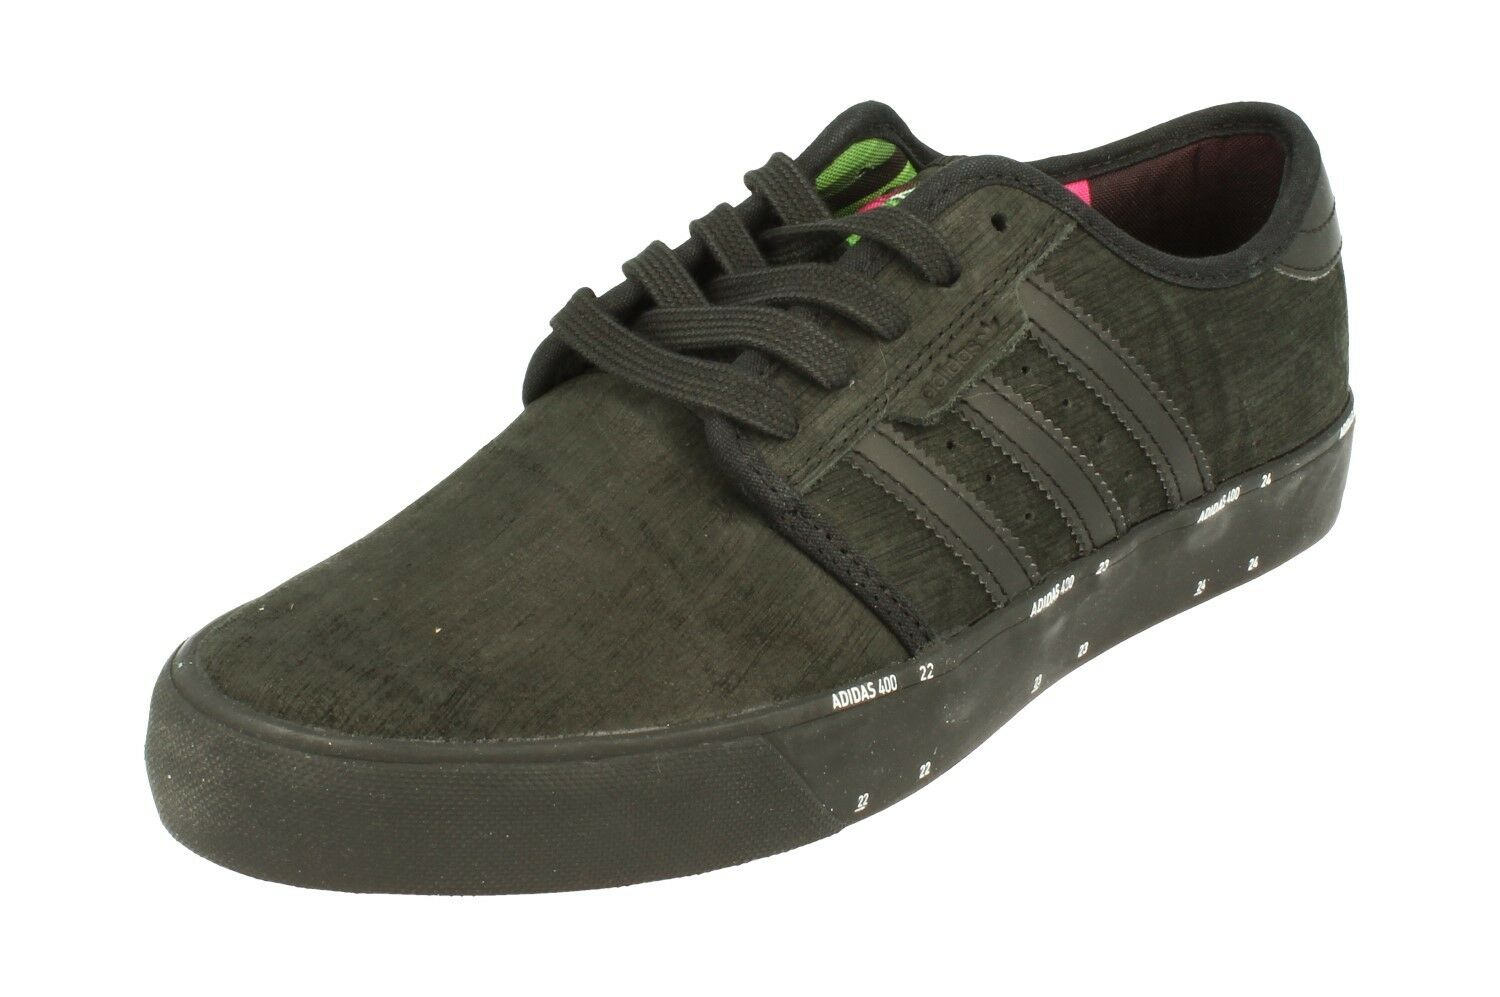 Adidas Seeley X Ari Marcopoulos Mens Trainers Sneakers BY4520 Cheap women's shoes women's shoes